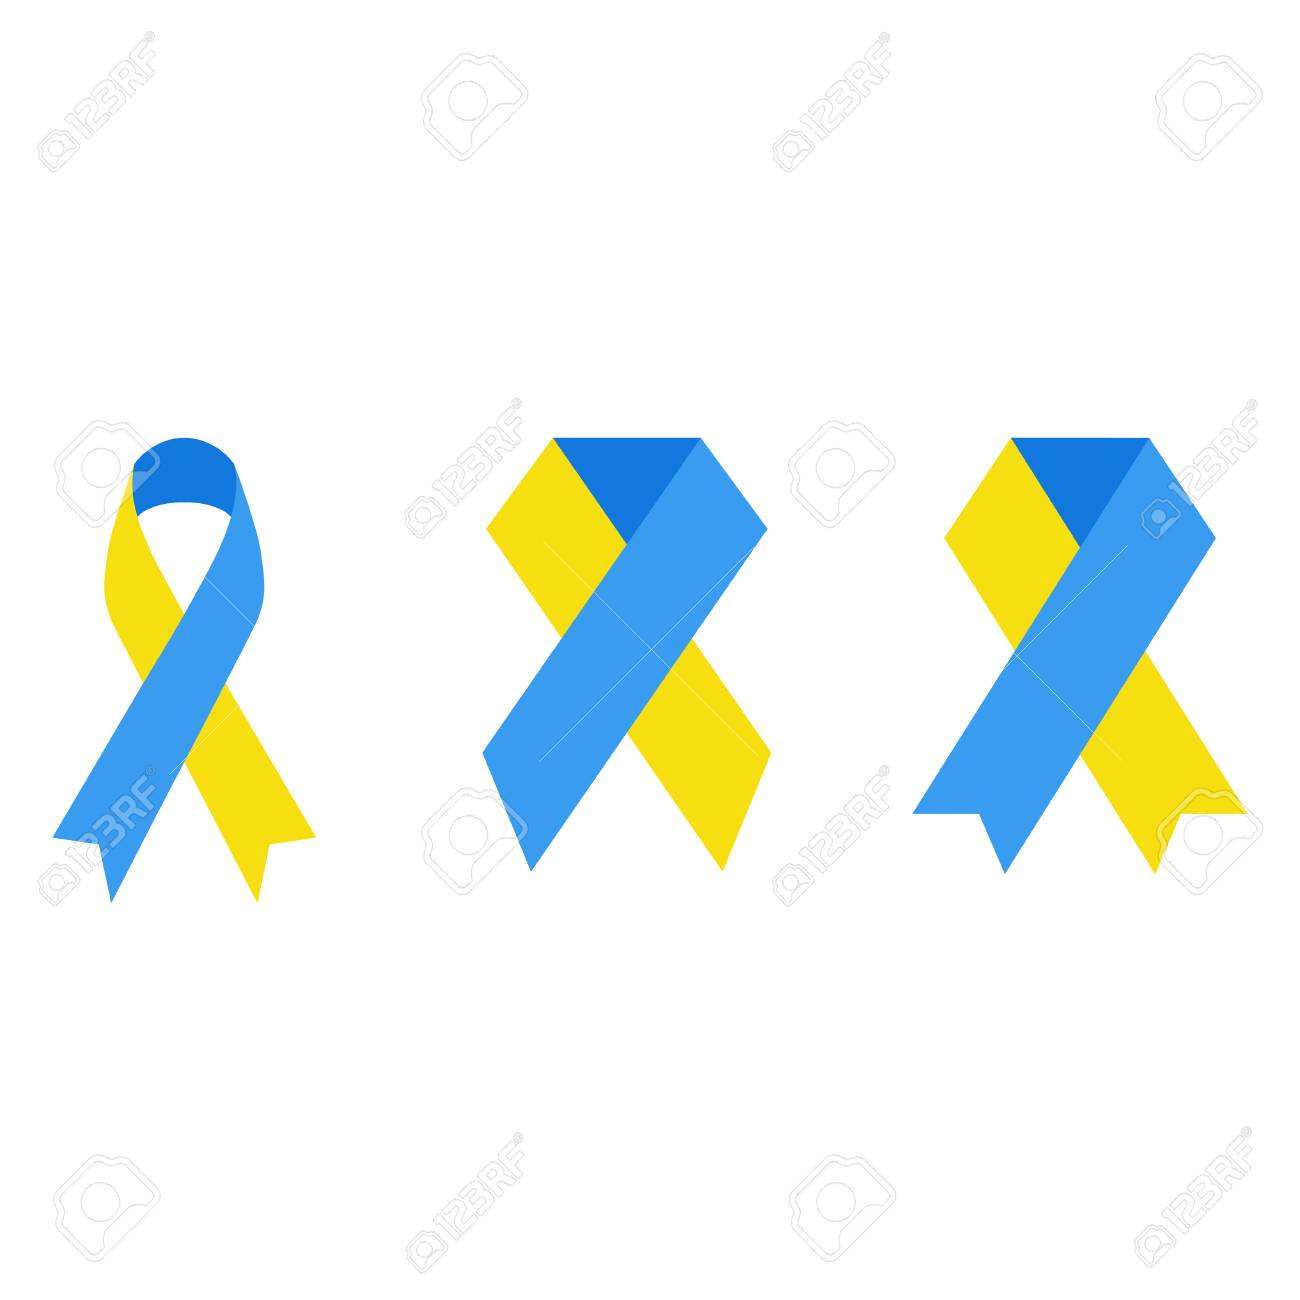 Yellow And Blue Ribbon Clipart Illustration Emblem For Down